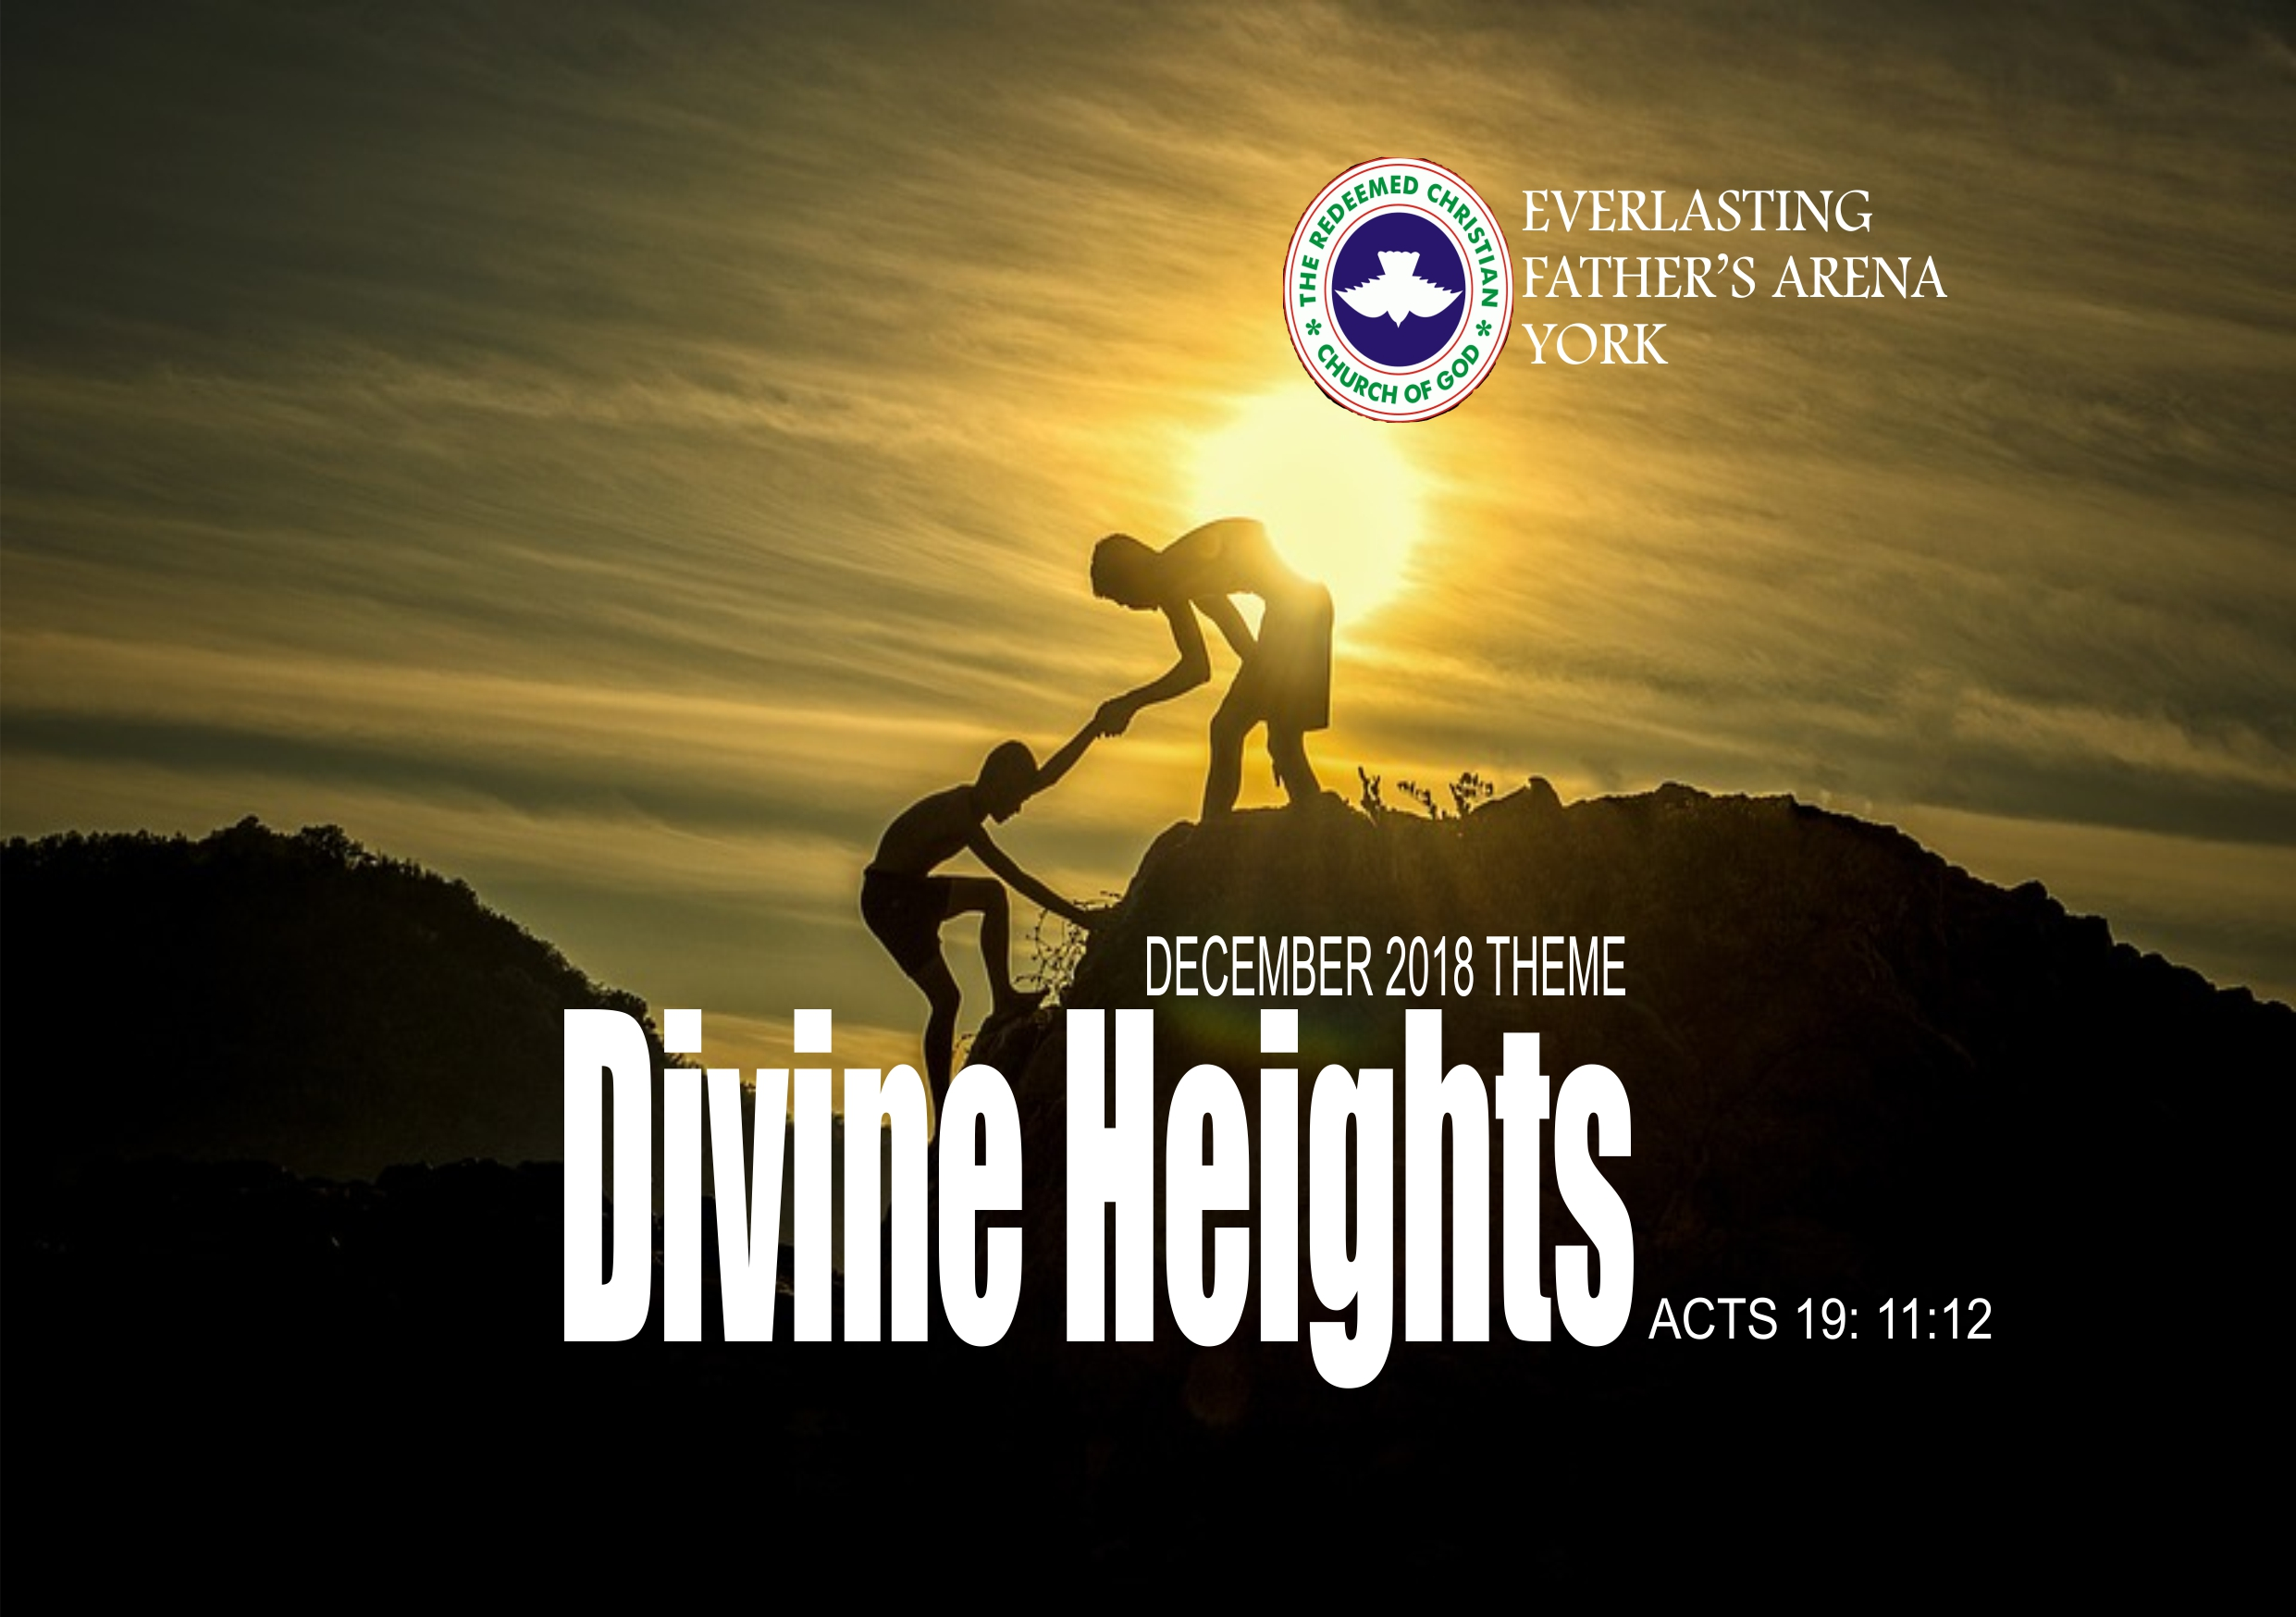 December 2018 Theme - Divine Heights - Acts 19:11-12